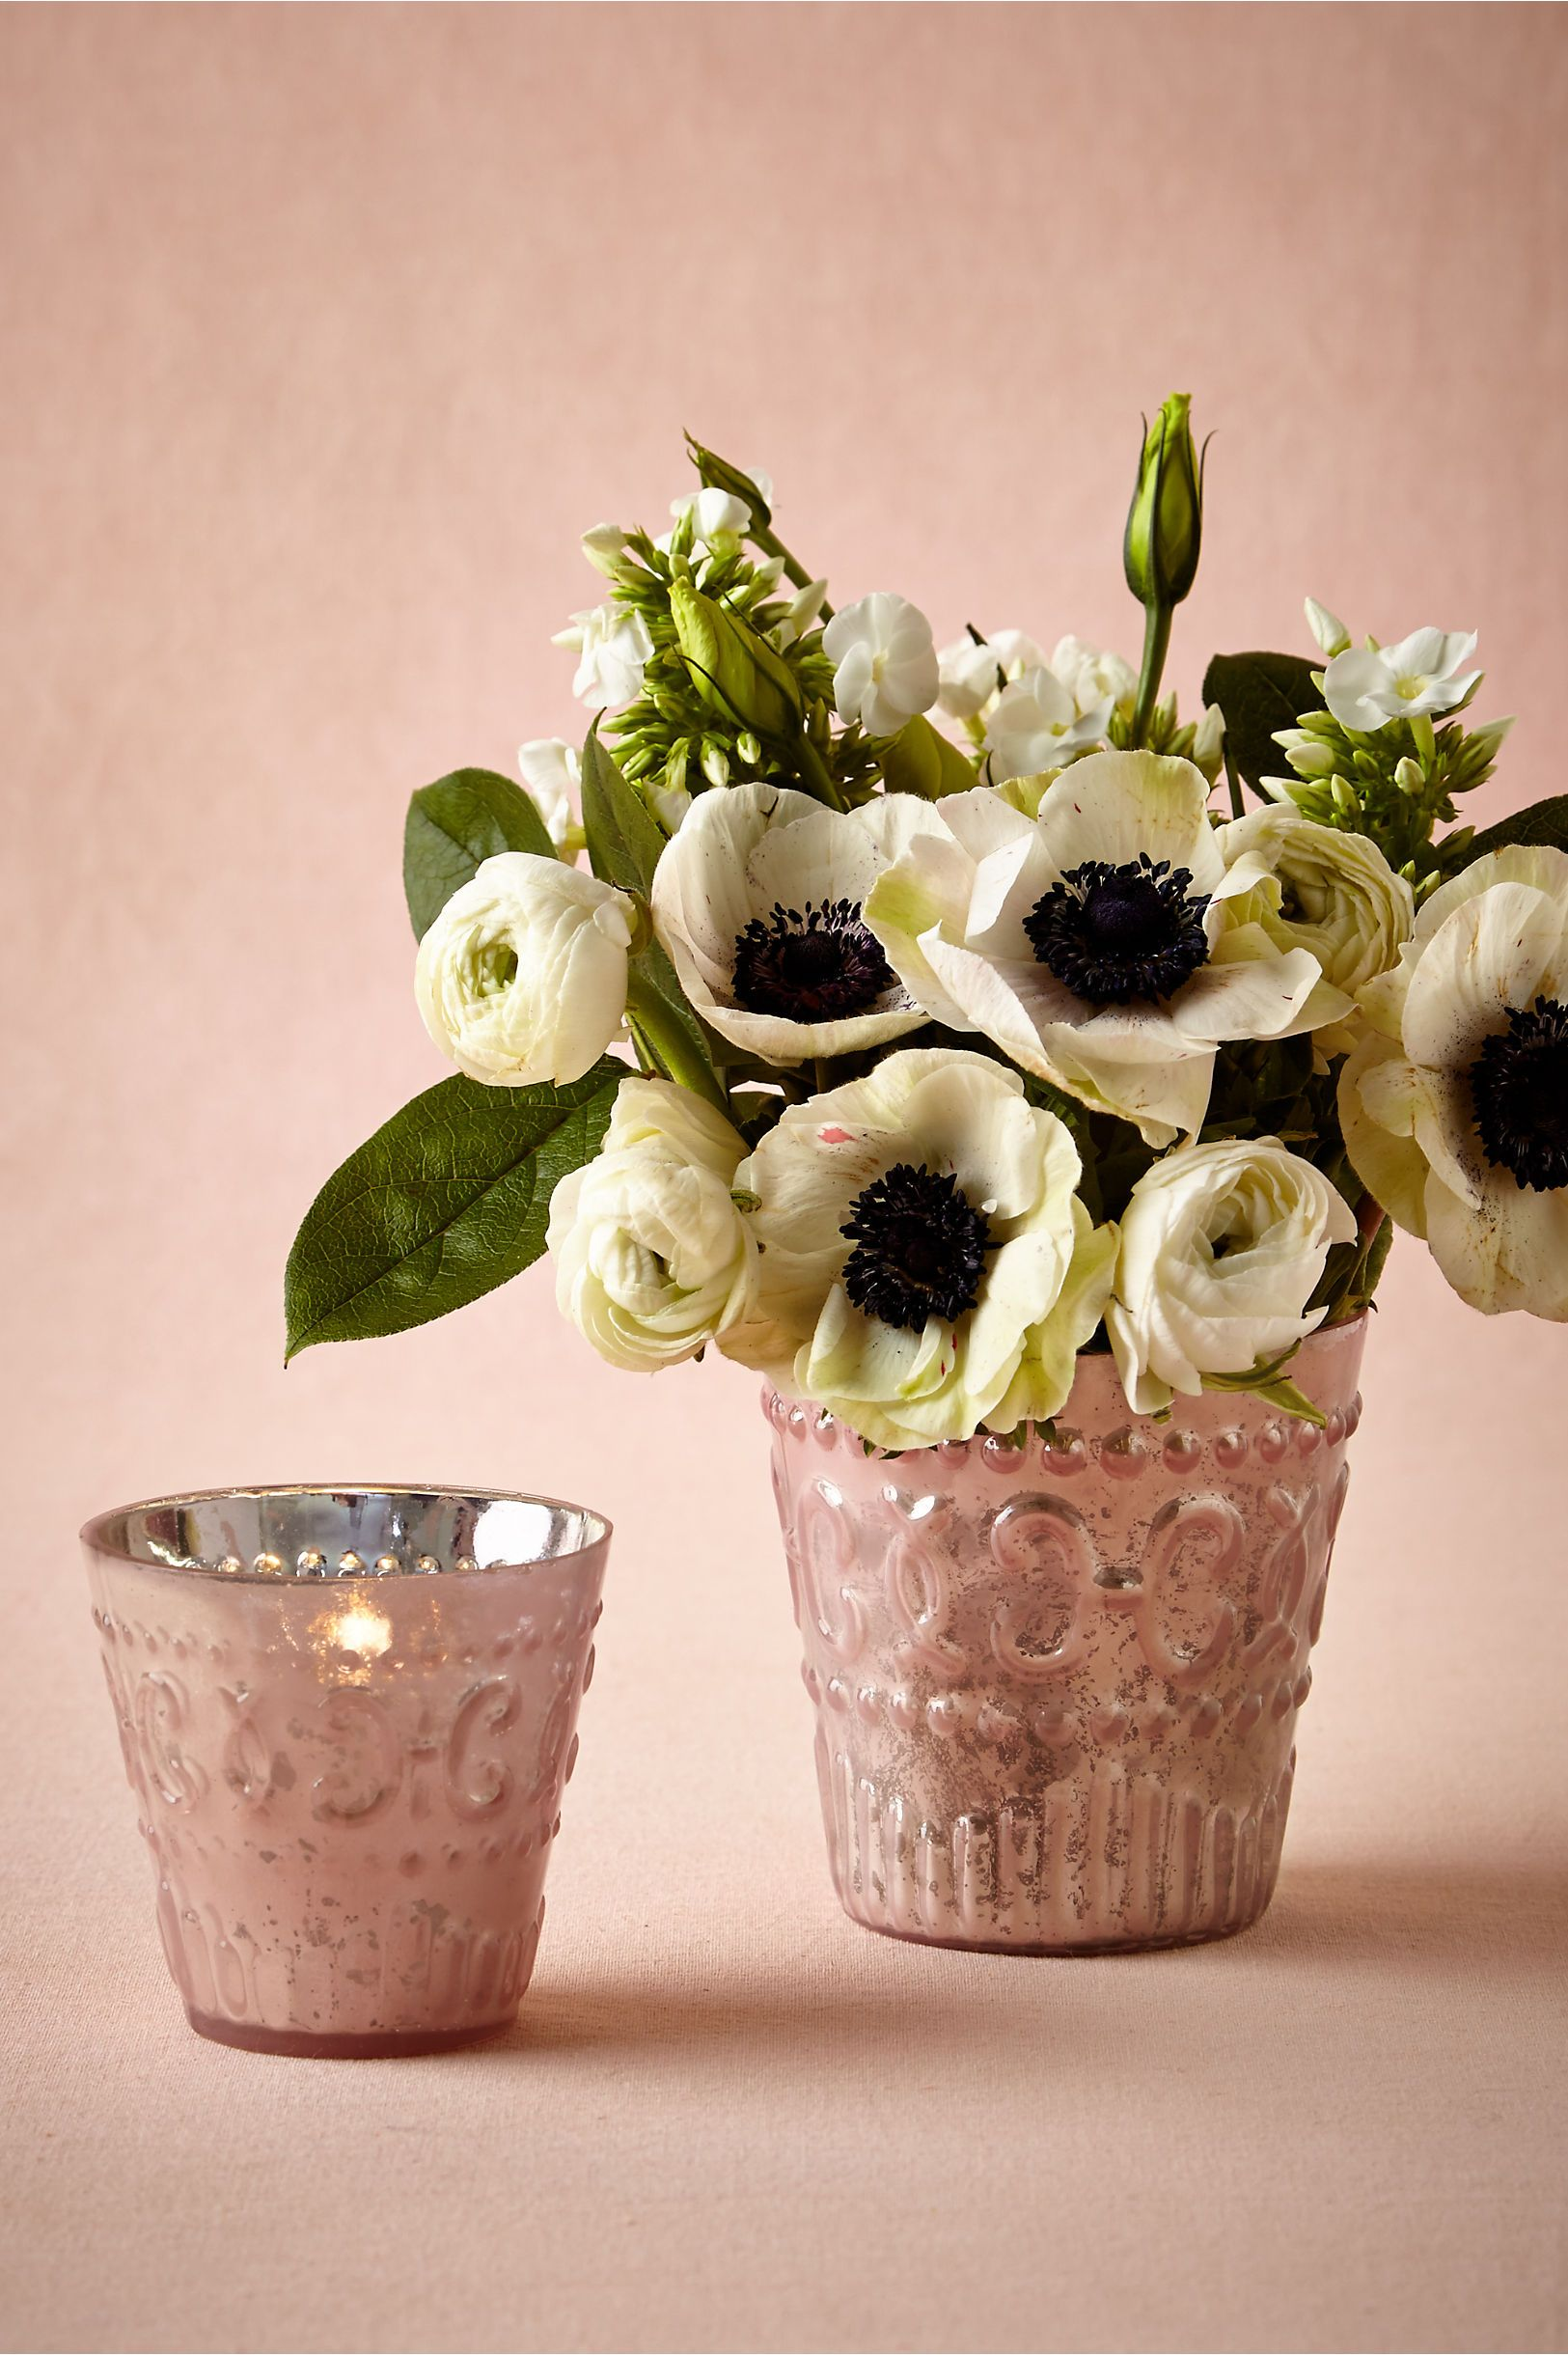 1920s wedding decoration ideas  Painted Mercury Vessels from BHLDN  s wedding decor  Pinterest